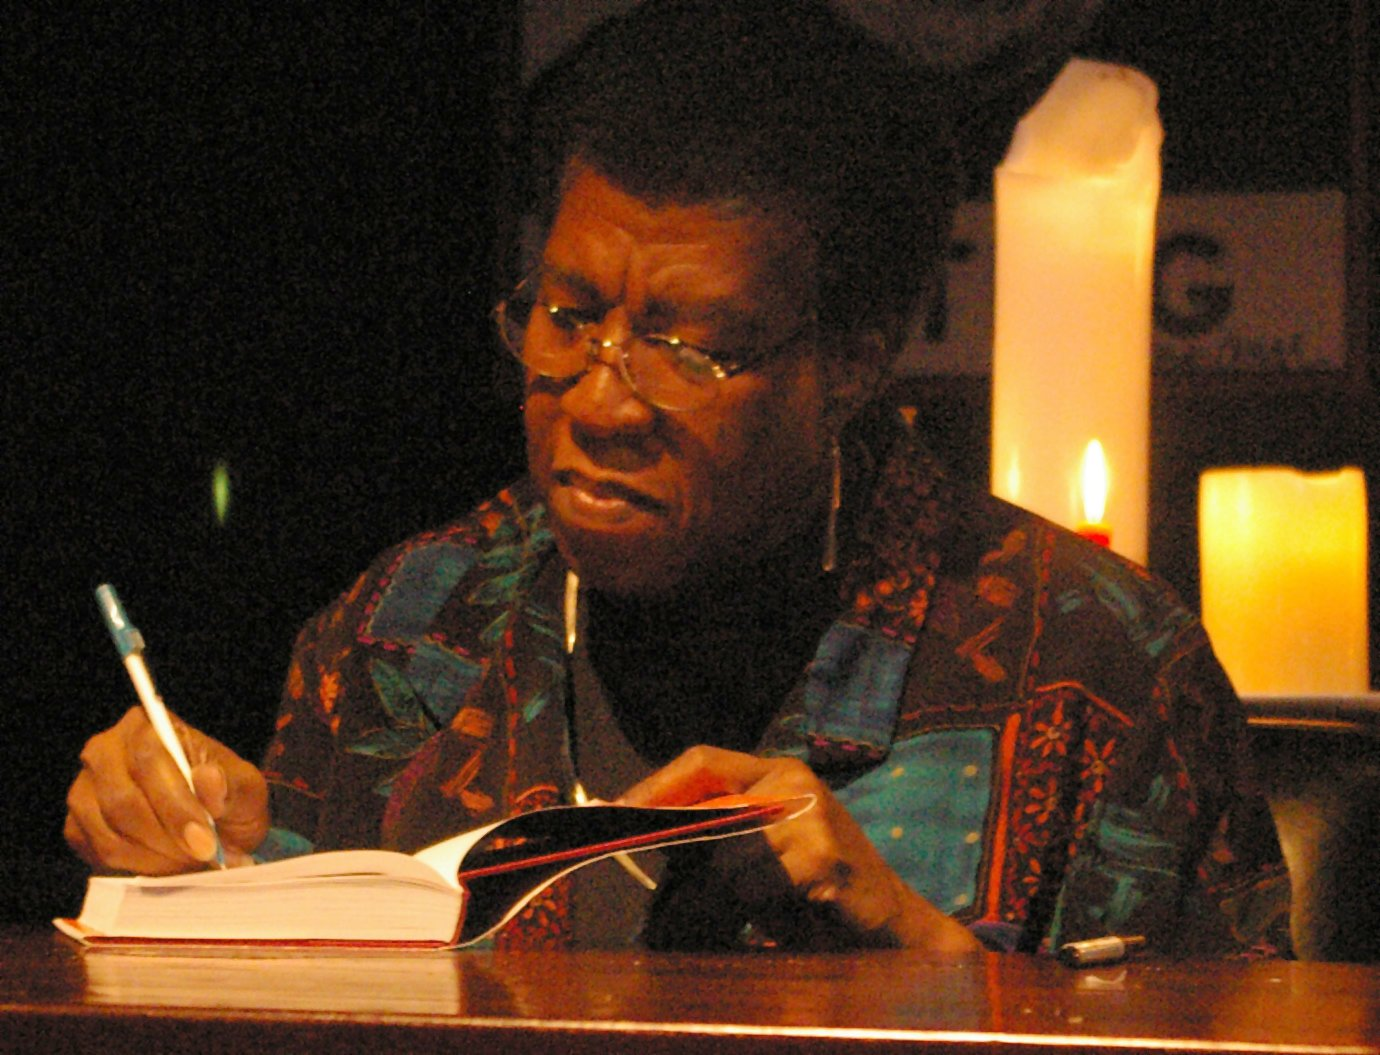 a photo of Octavia Butler